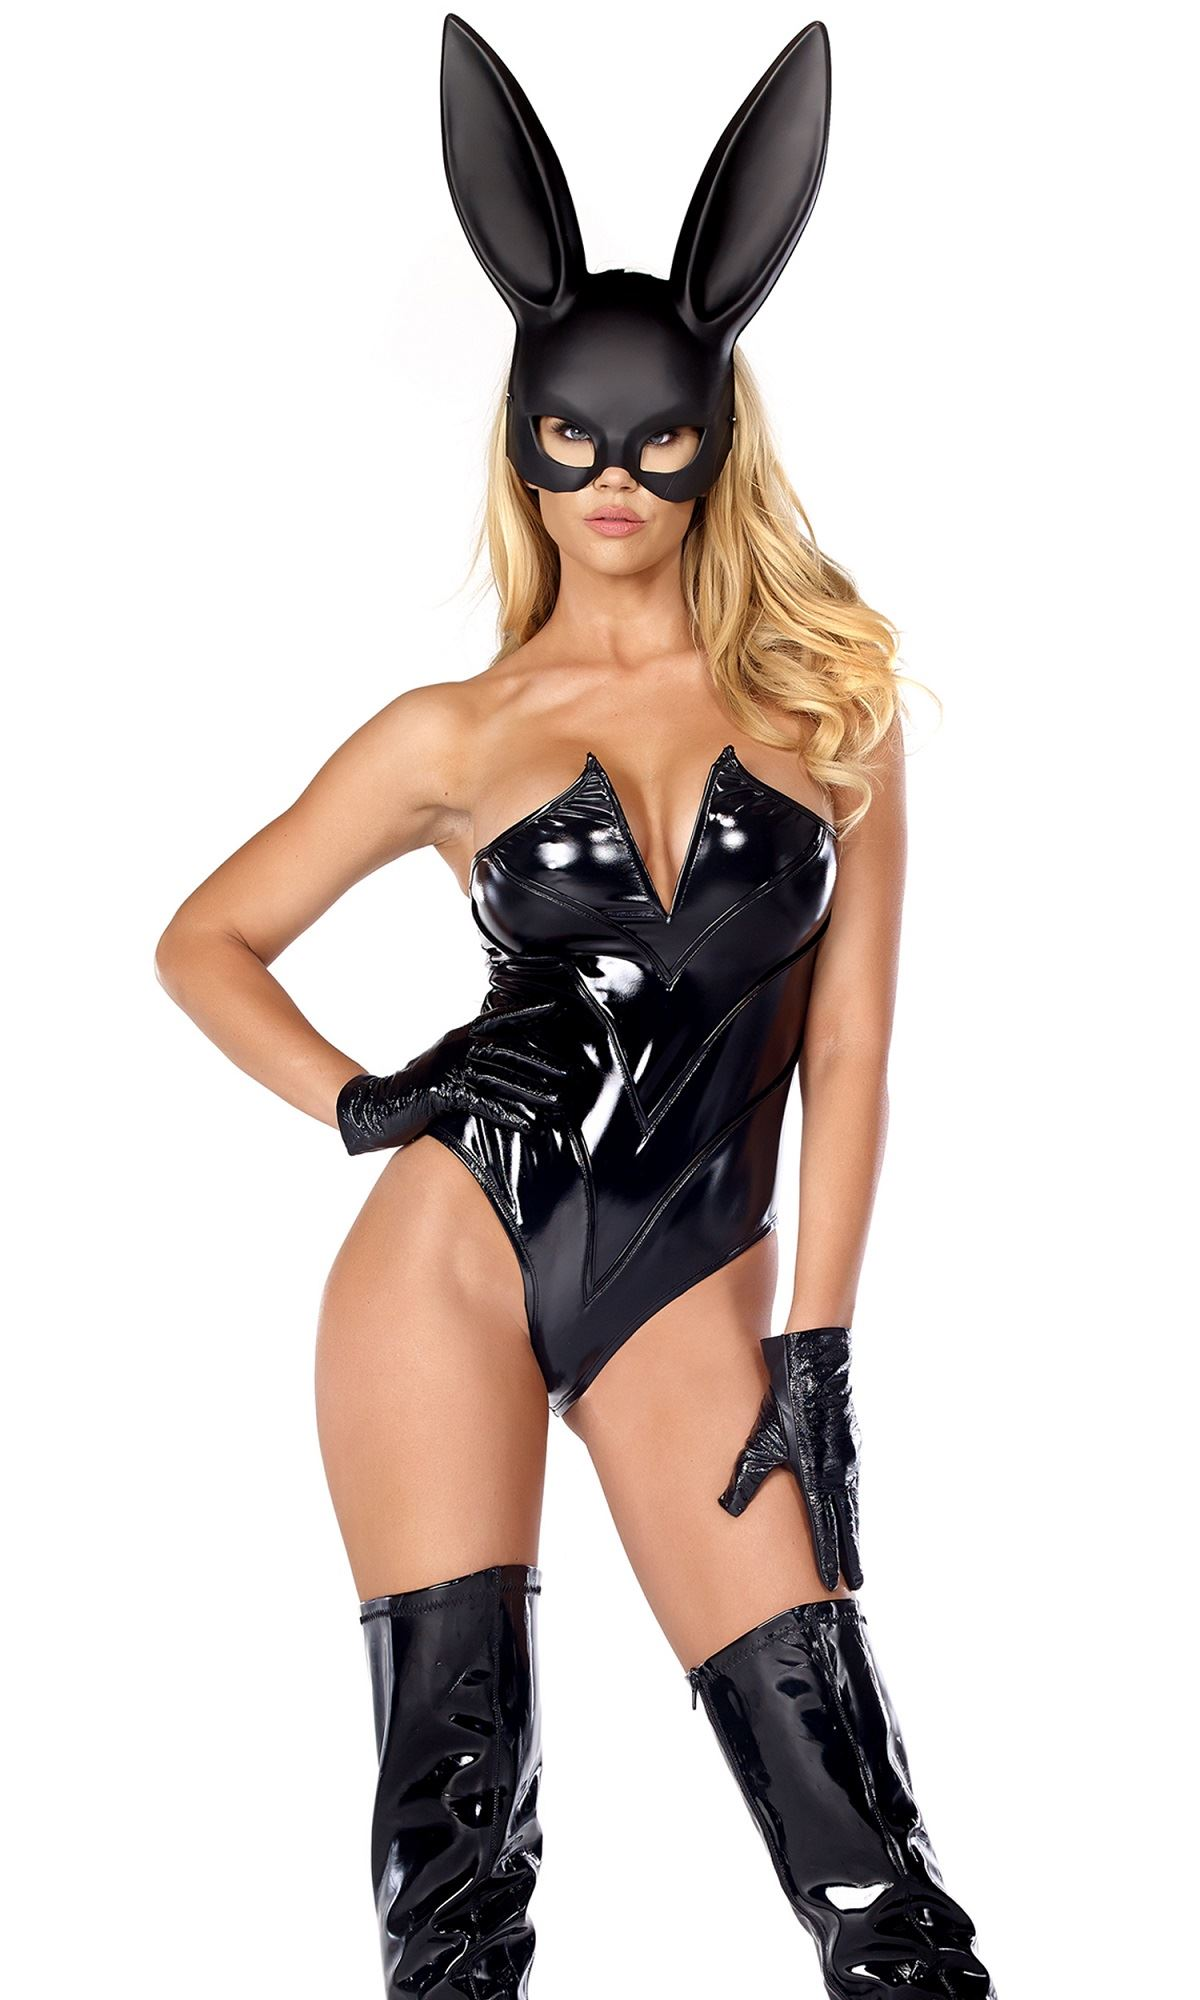 Adult erotic halloween costumes speaking